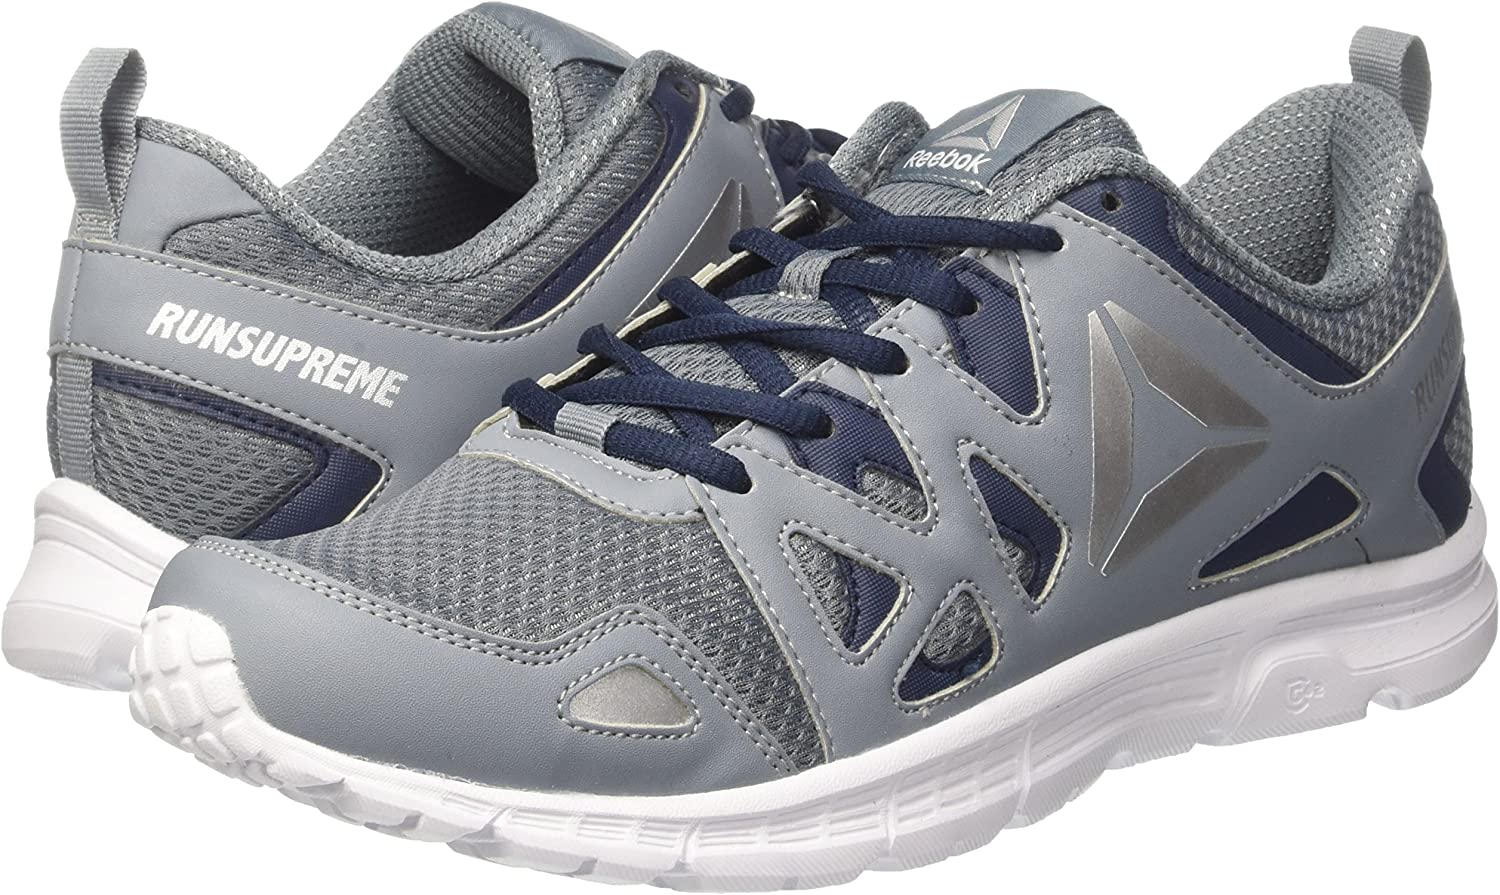 Reebok BD2187, Zapatillas de Trail Running para Hombre, Gris (Asteroid Dust/Collegiate Navy/White/Pewt), 50 EU: Amazon.es: Zapatos y complementos